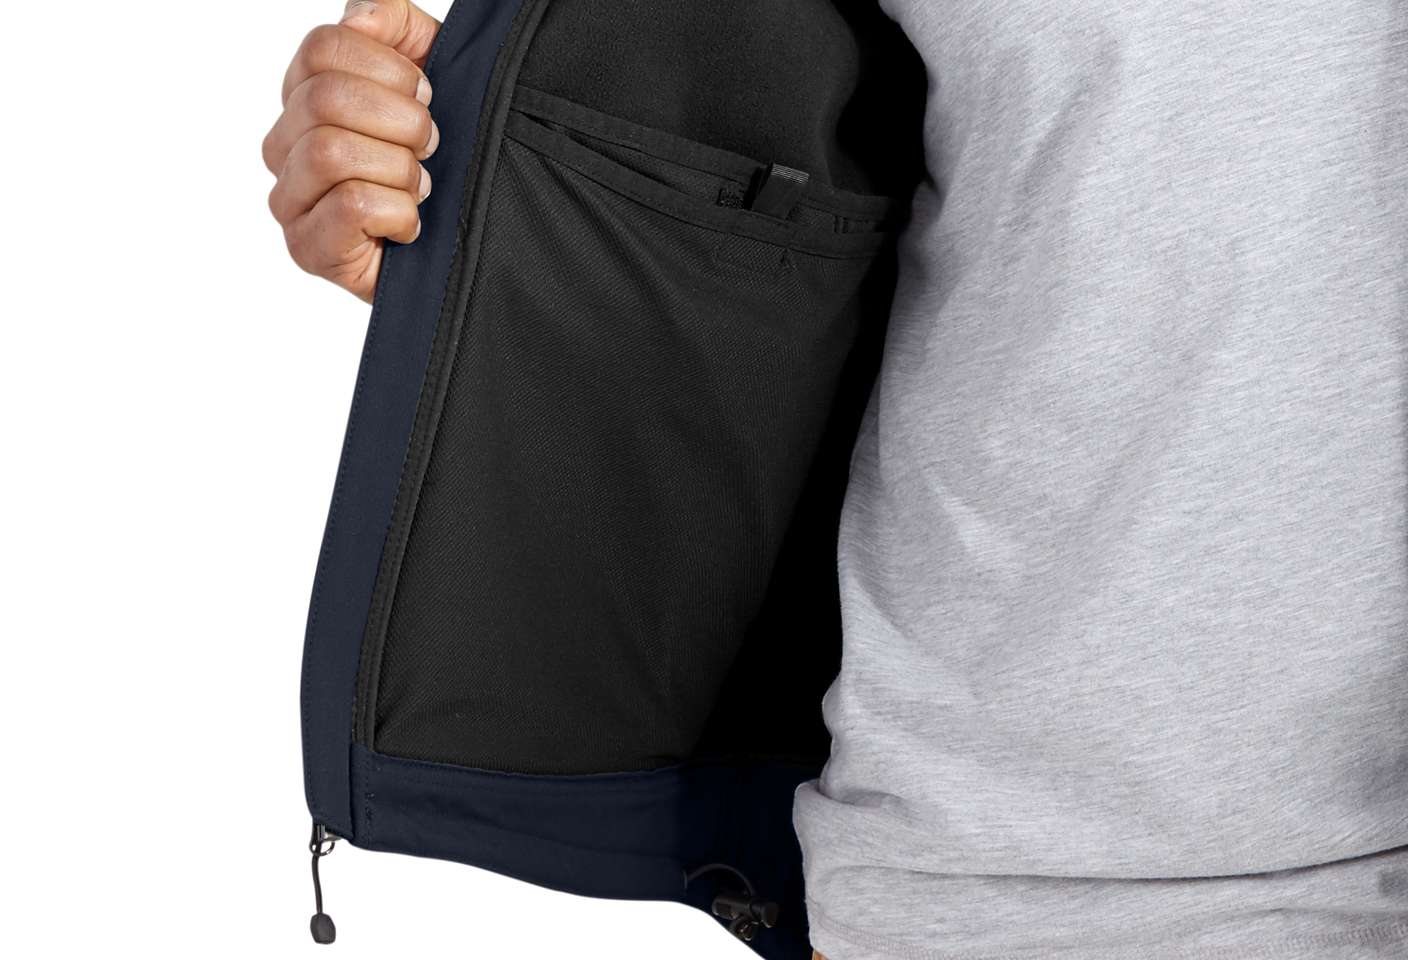 Large inner document-pocket protects paperwork